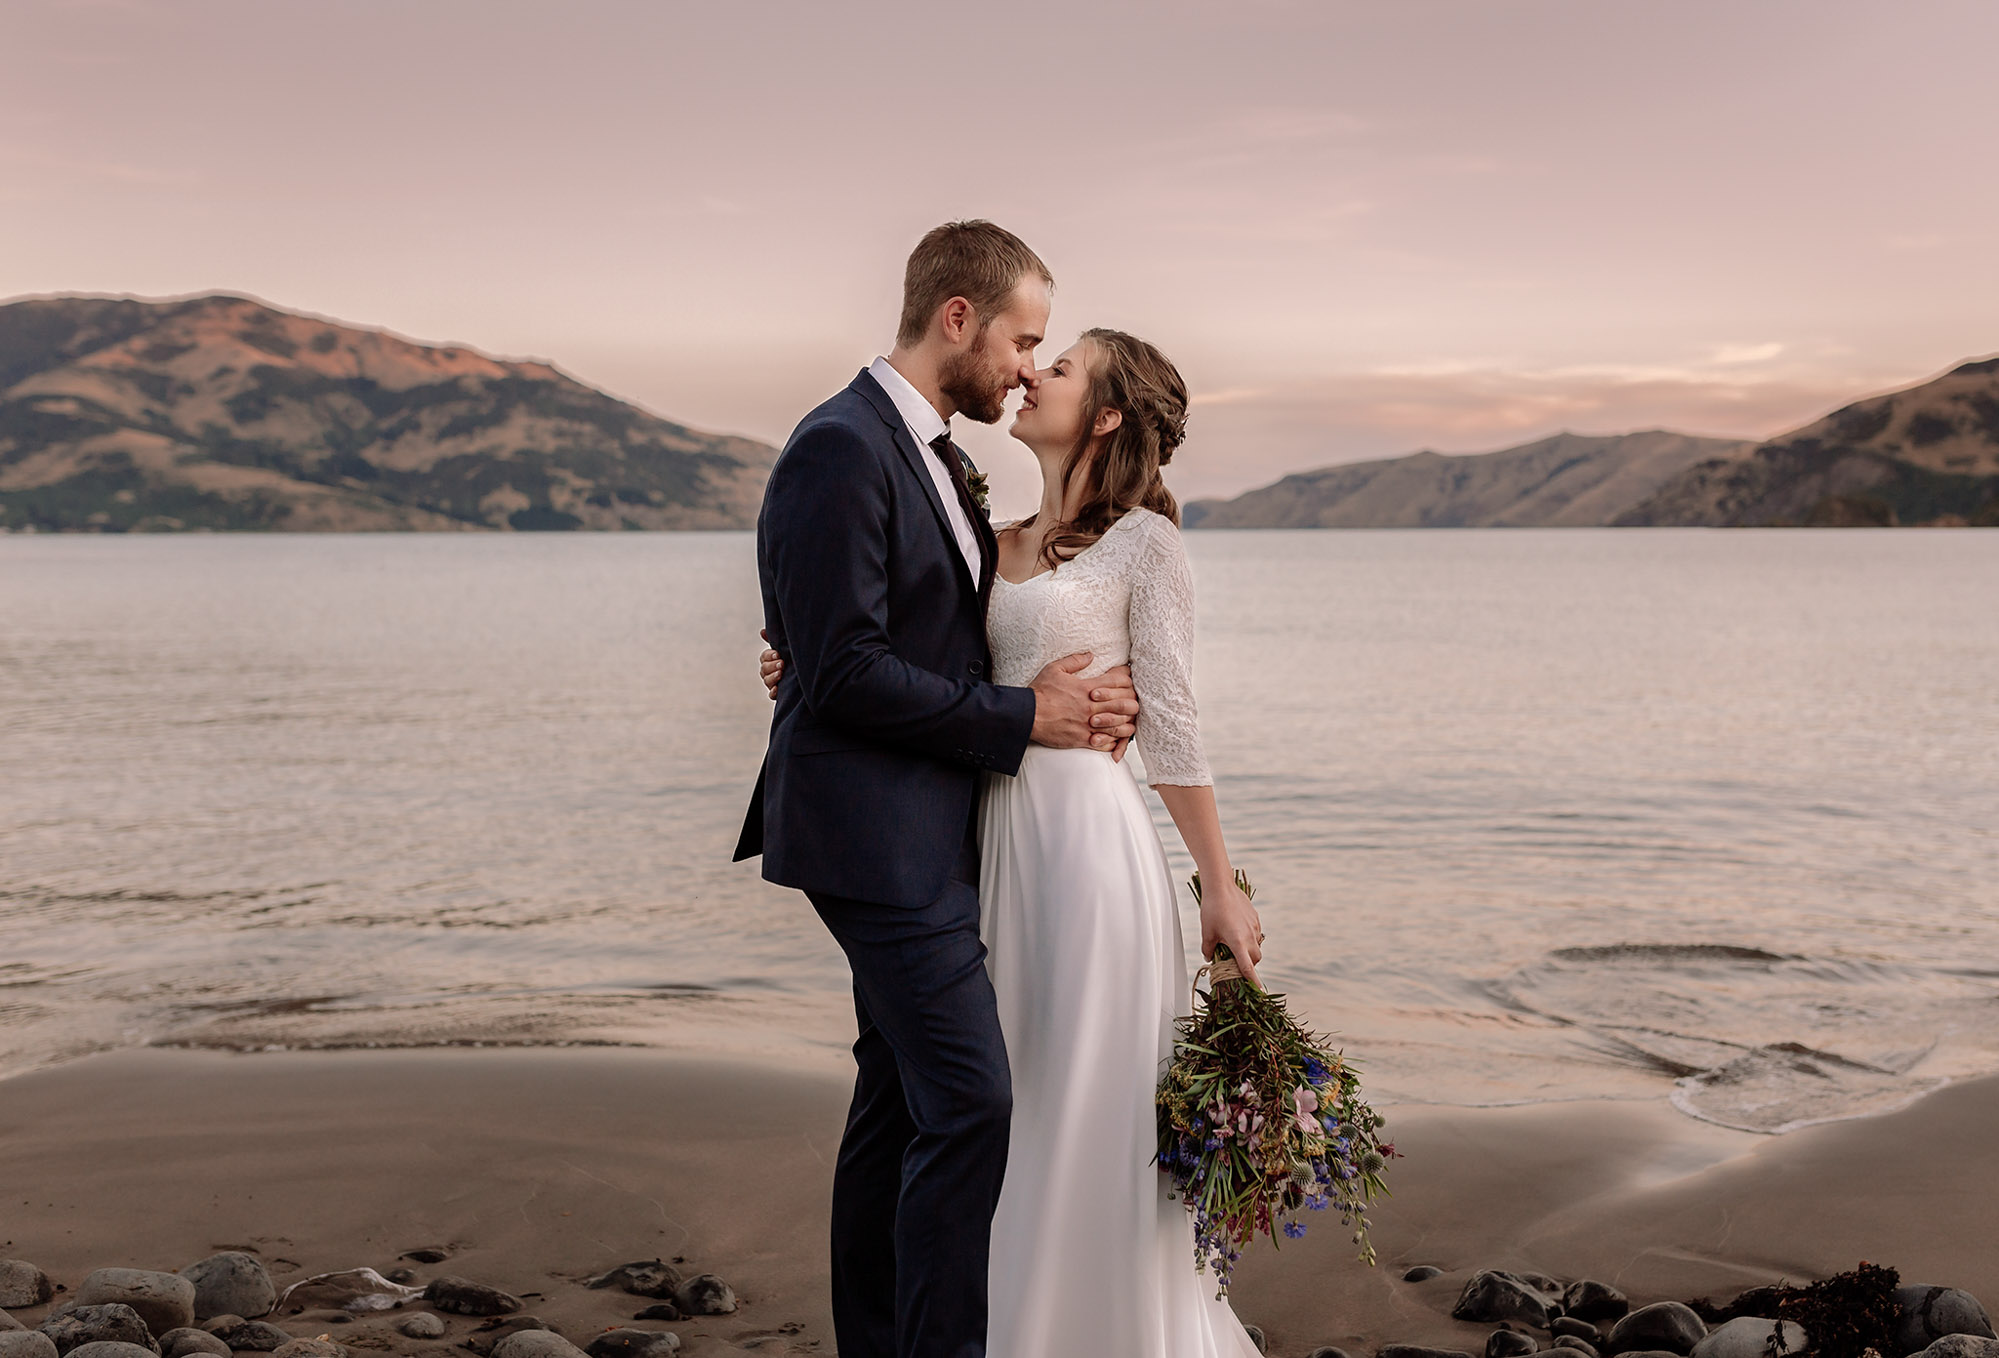 Hannah + Oli | Wainui Wedding